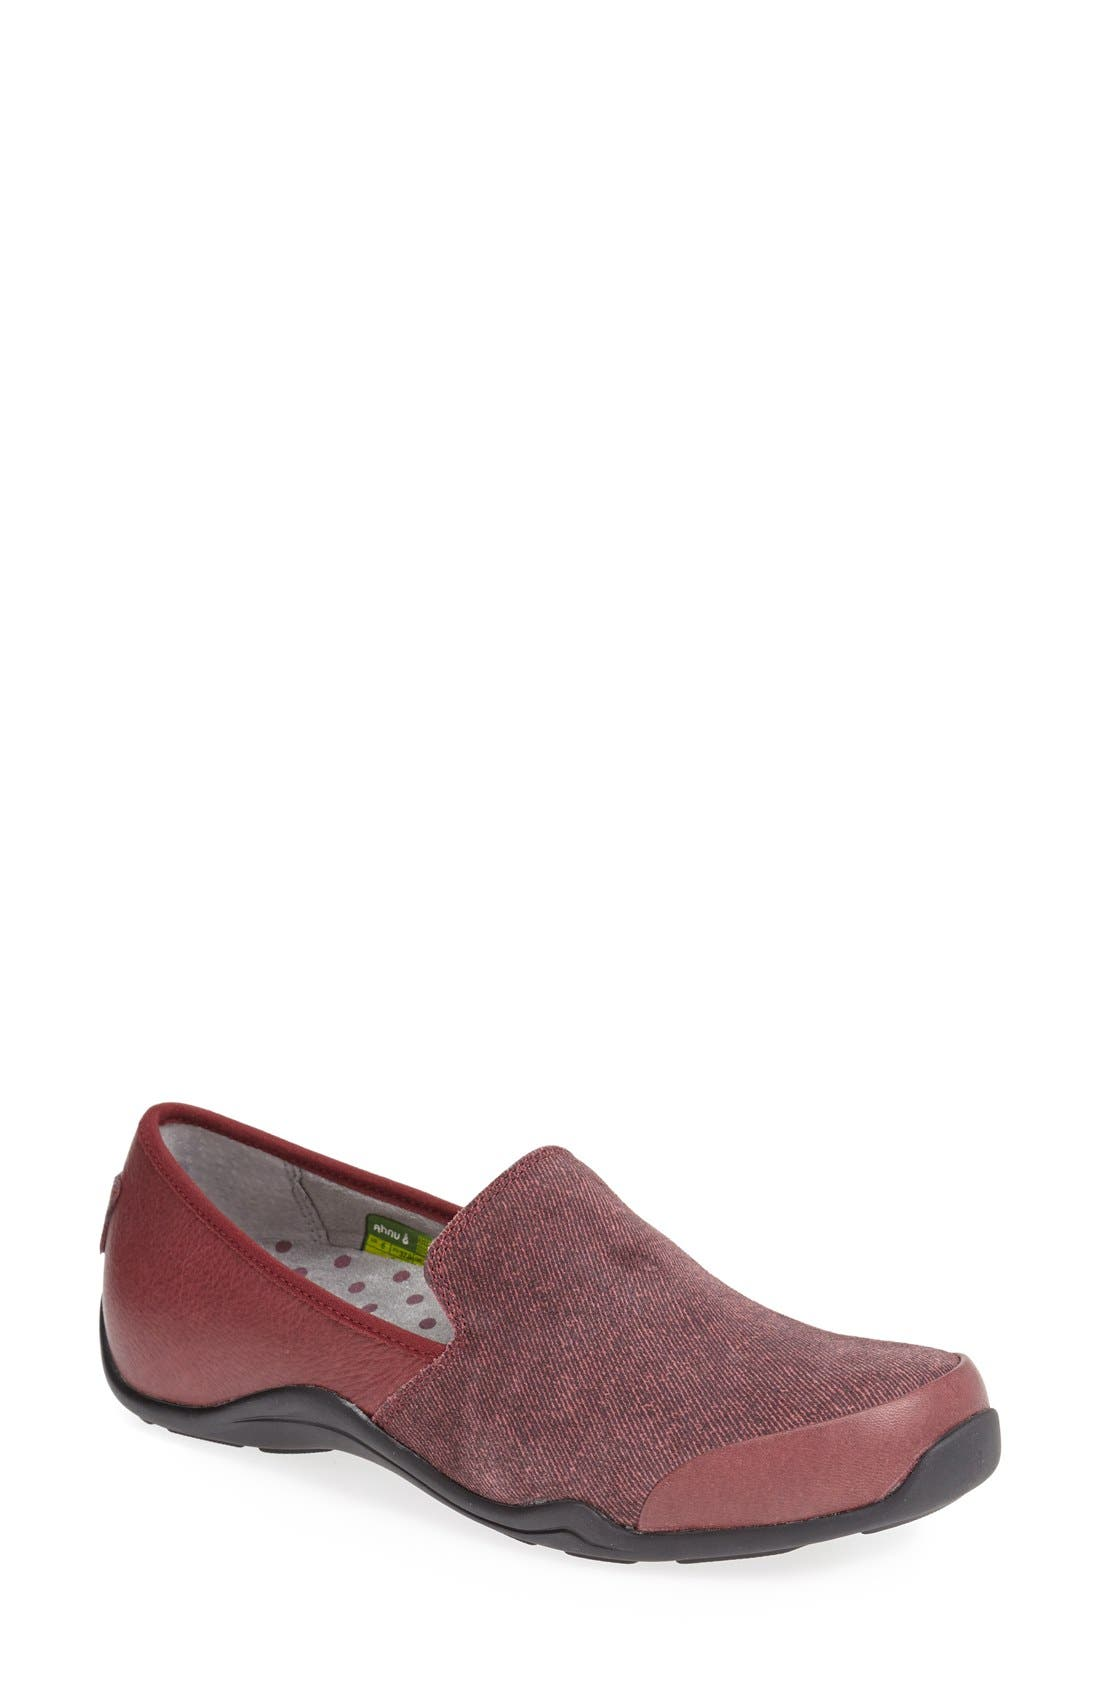 Alternate Image 1 Selected - Ahnu 'Penny' Leather Loafer (Women)